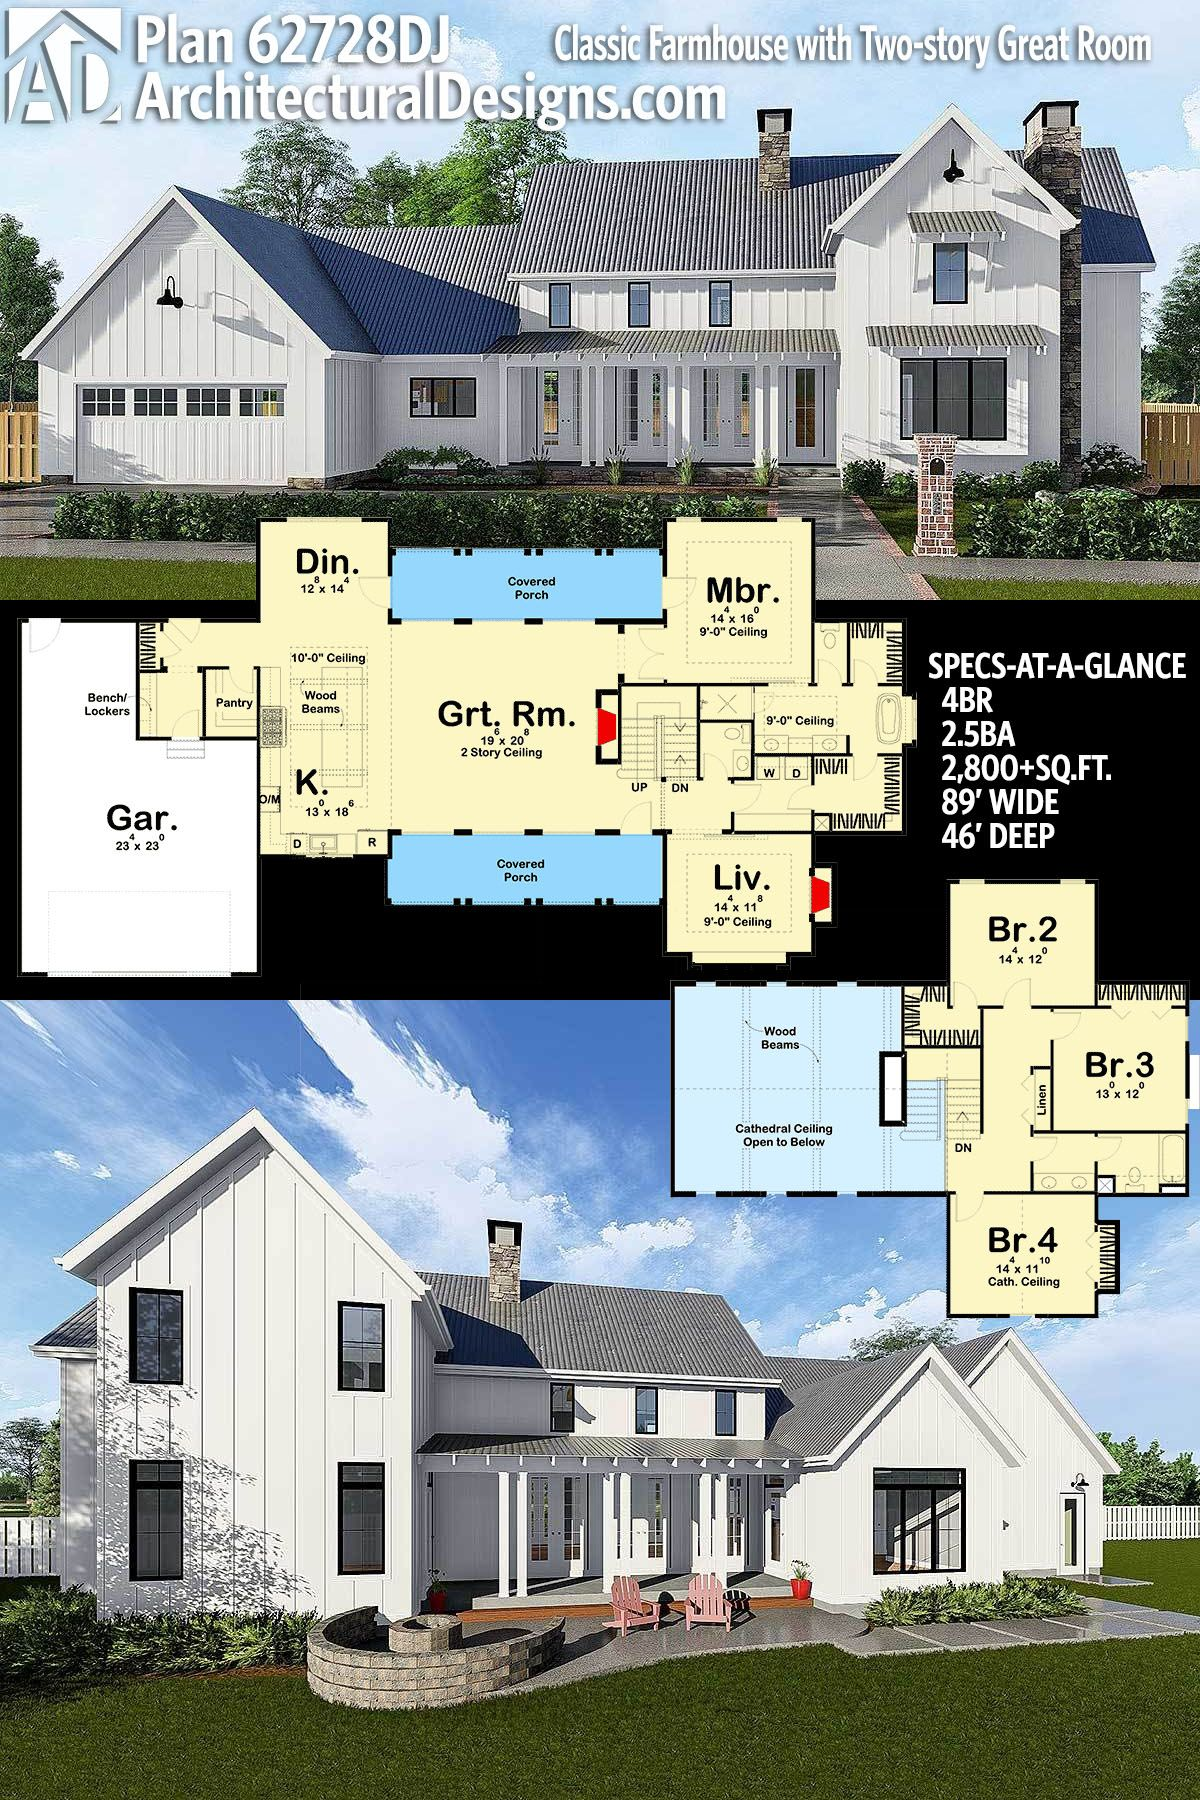 Plan 62728dj Classic Farmhouse With Two Story Great Room Modern Farmhouse Plans Farmhouse Plans House Plans